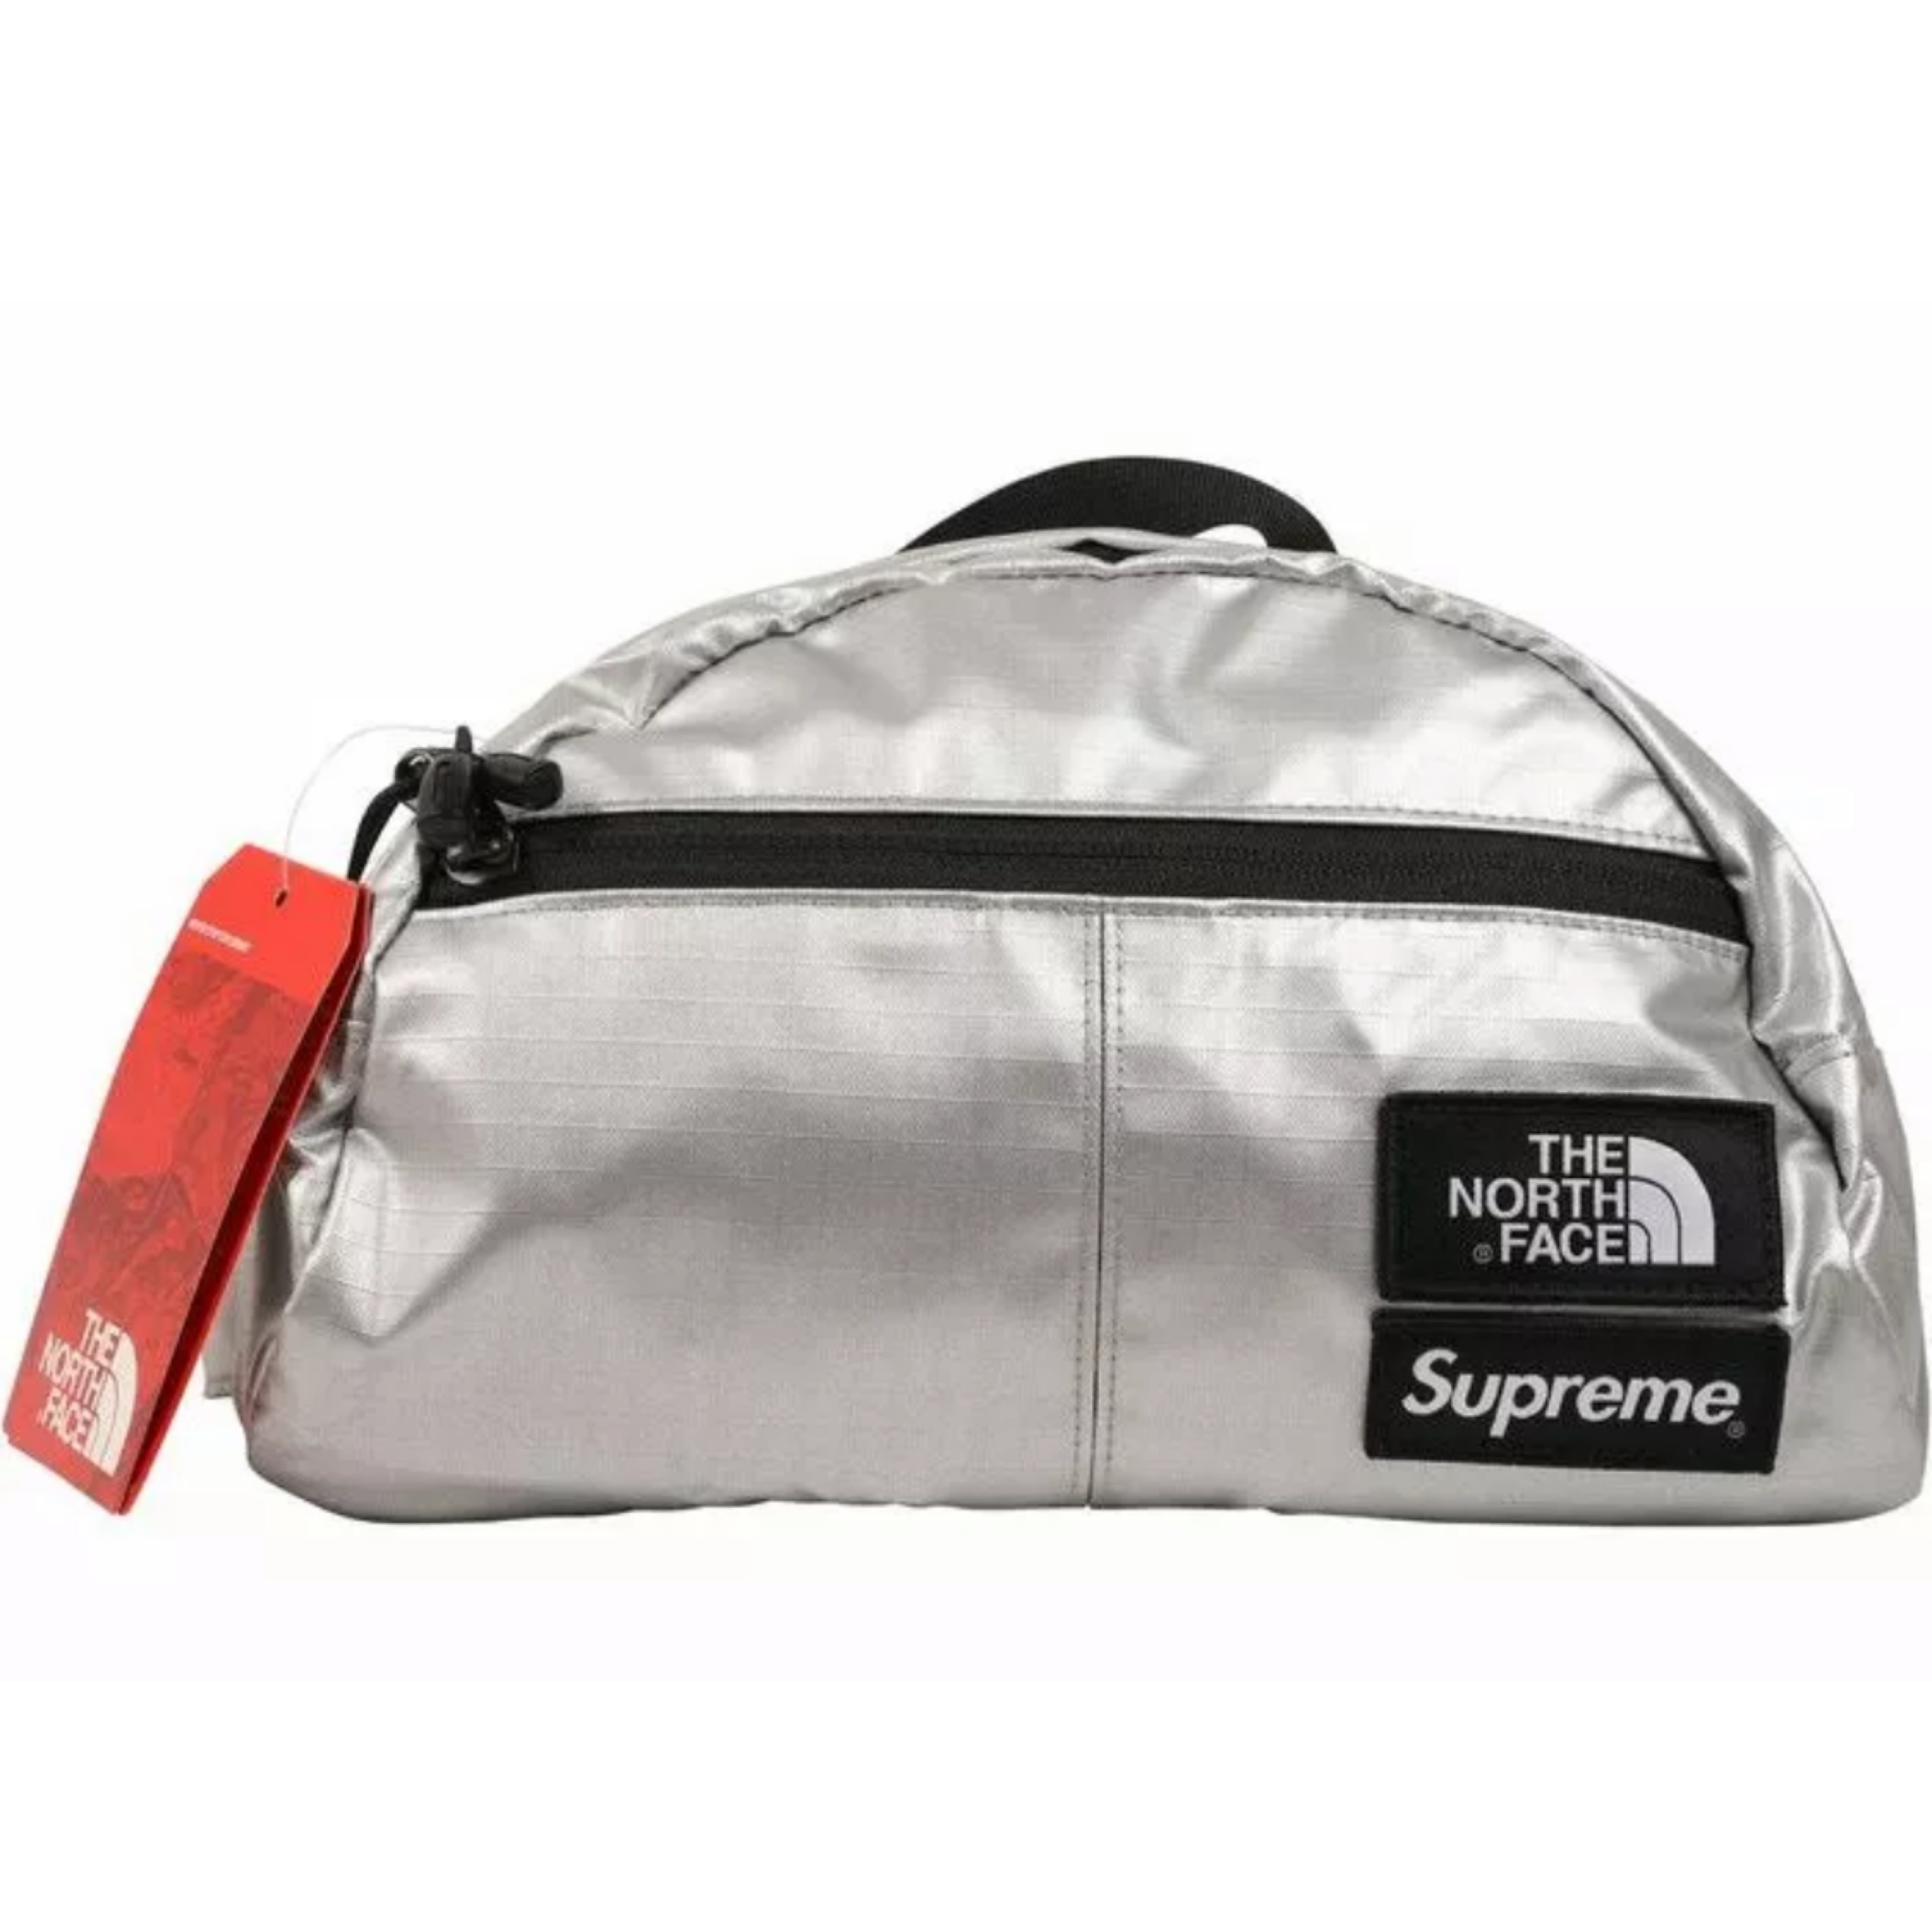 Brand New Supreme X The North Face Metallic Bag